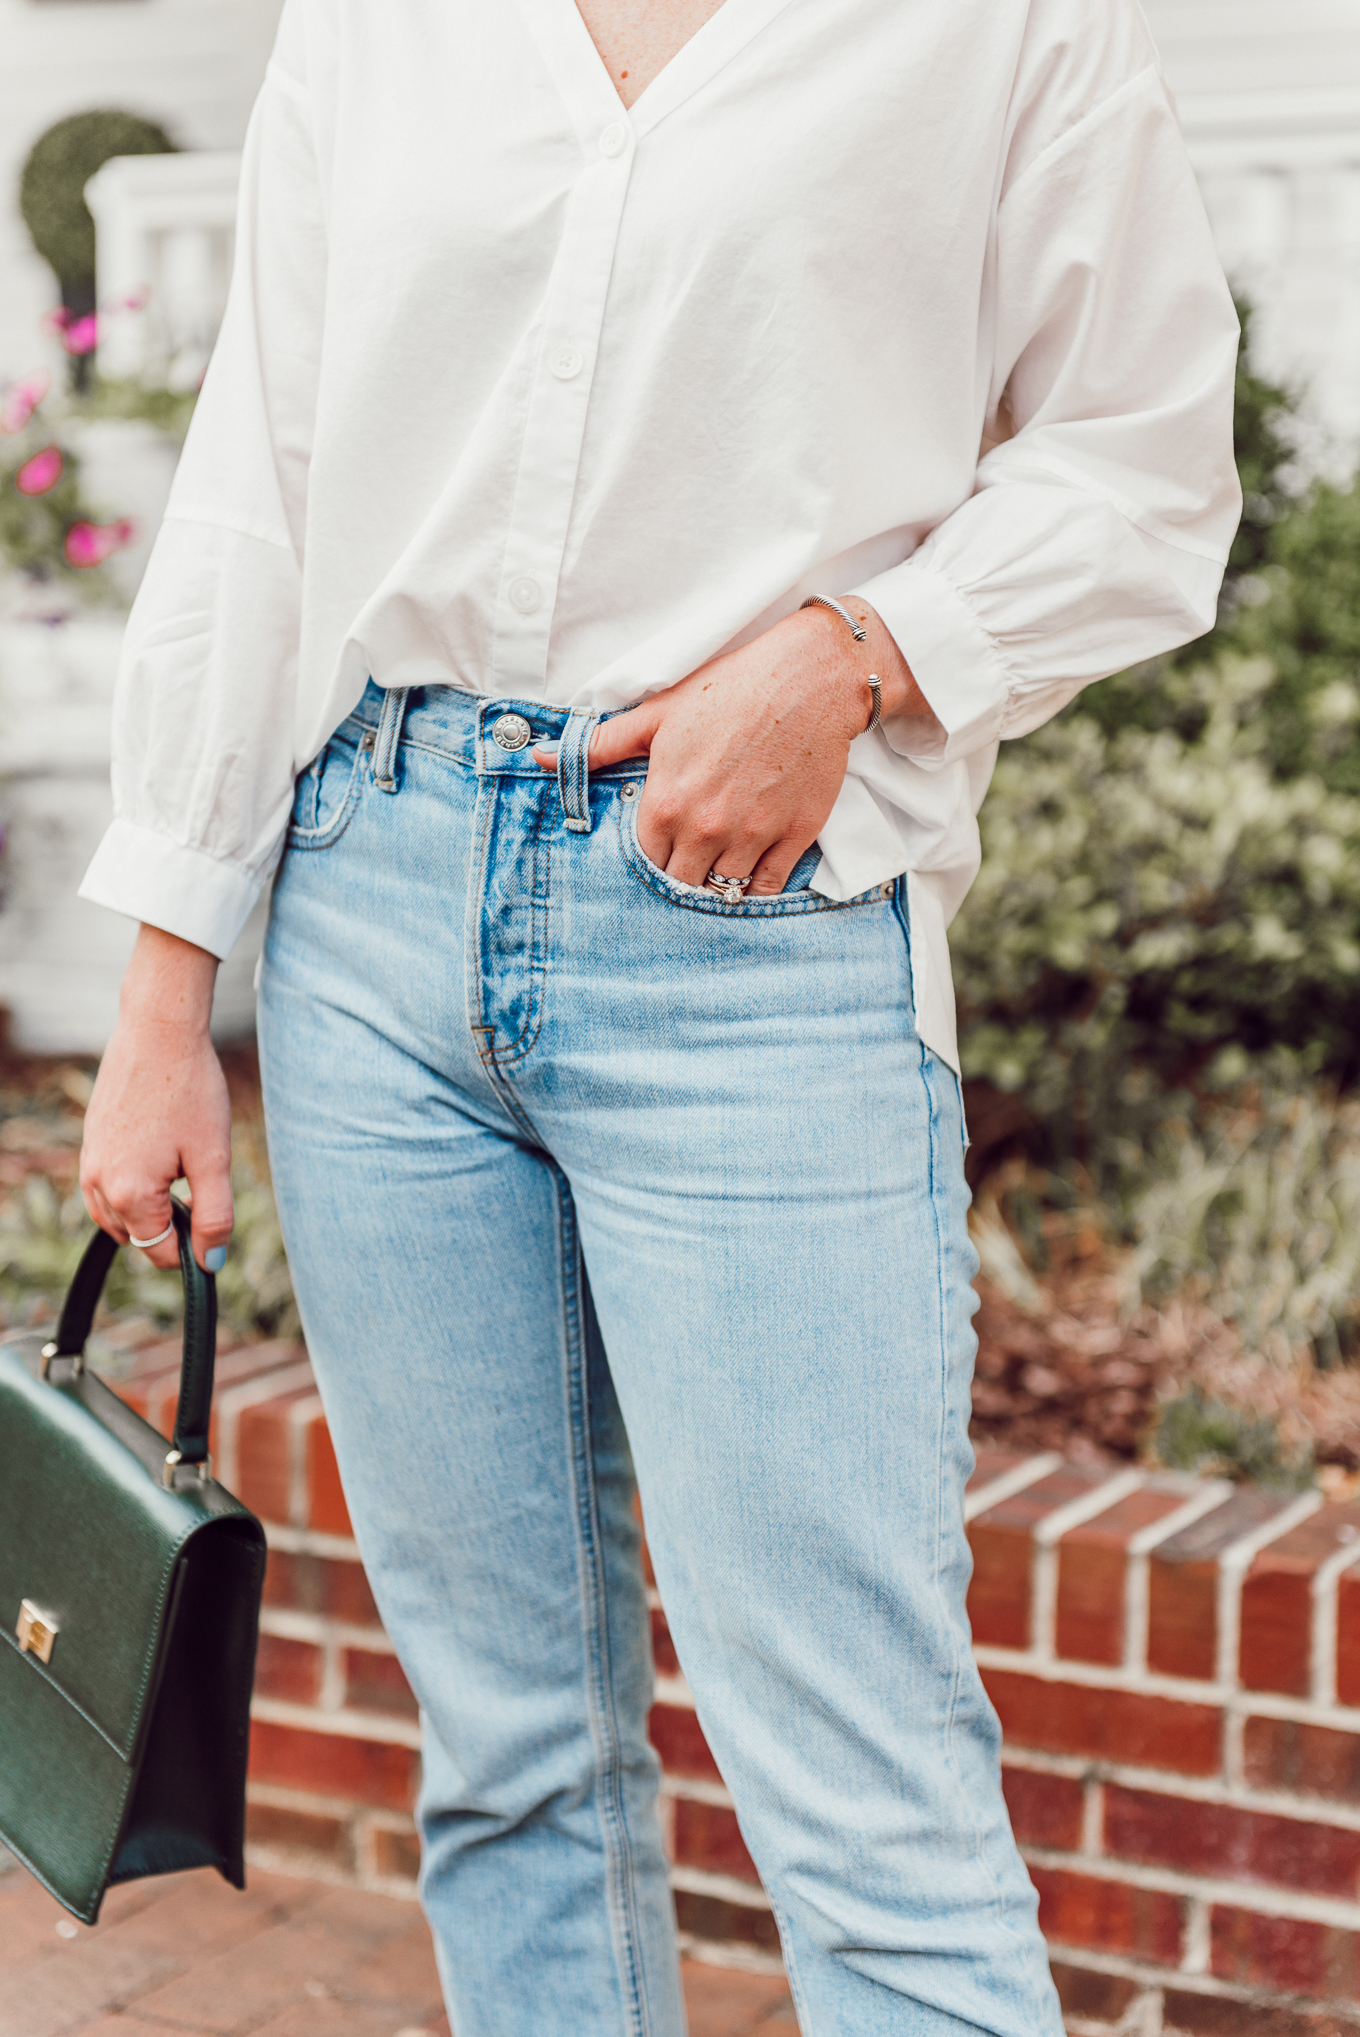 Classic Combo - White Top and Jeans | Fall Outfit Idea | Louella Reese